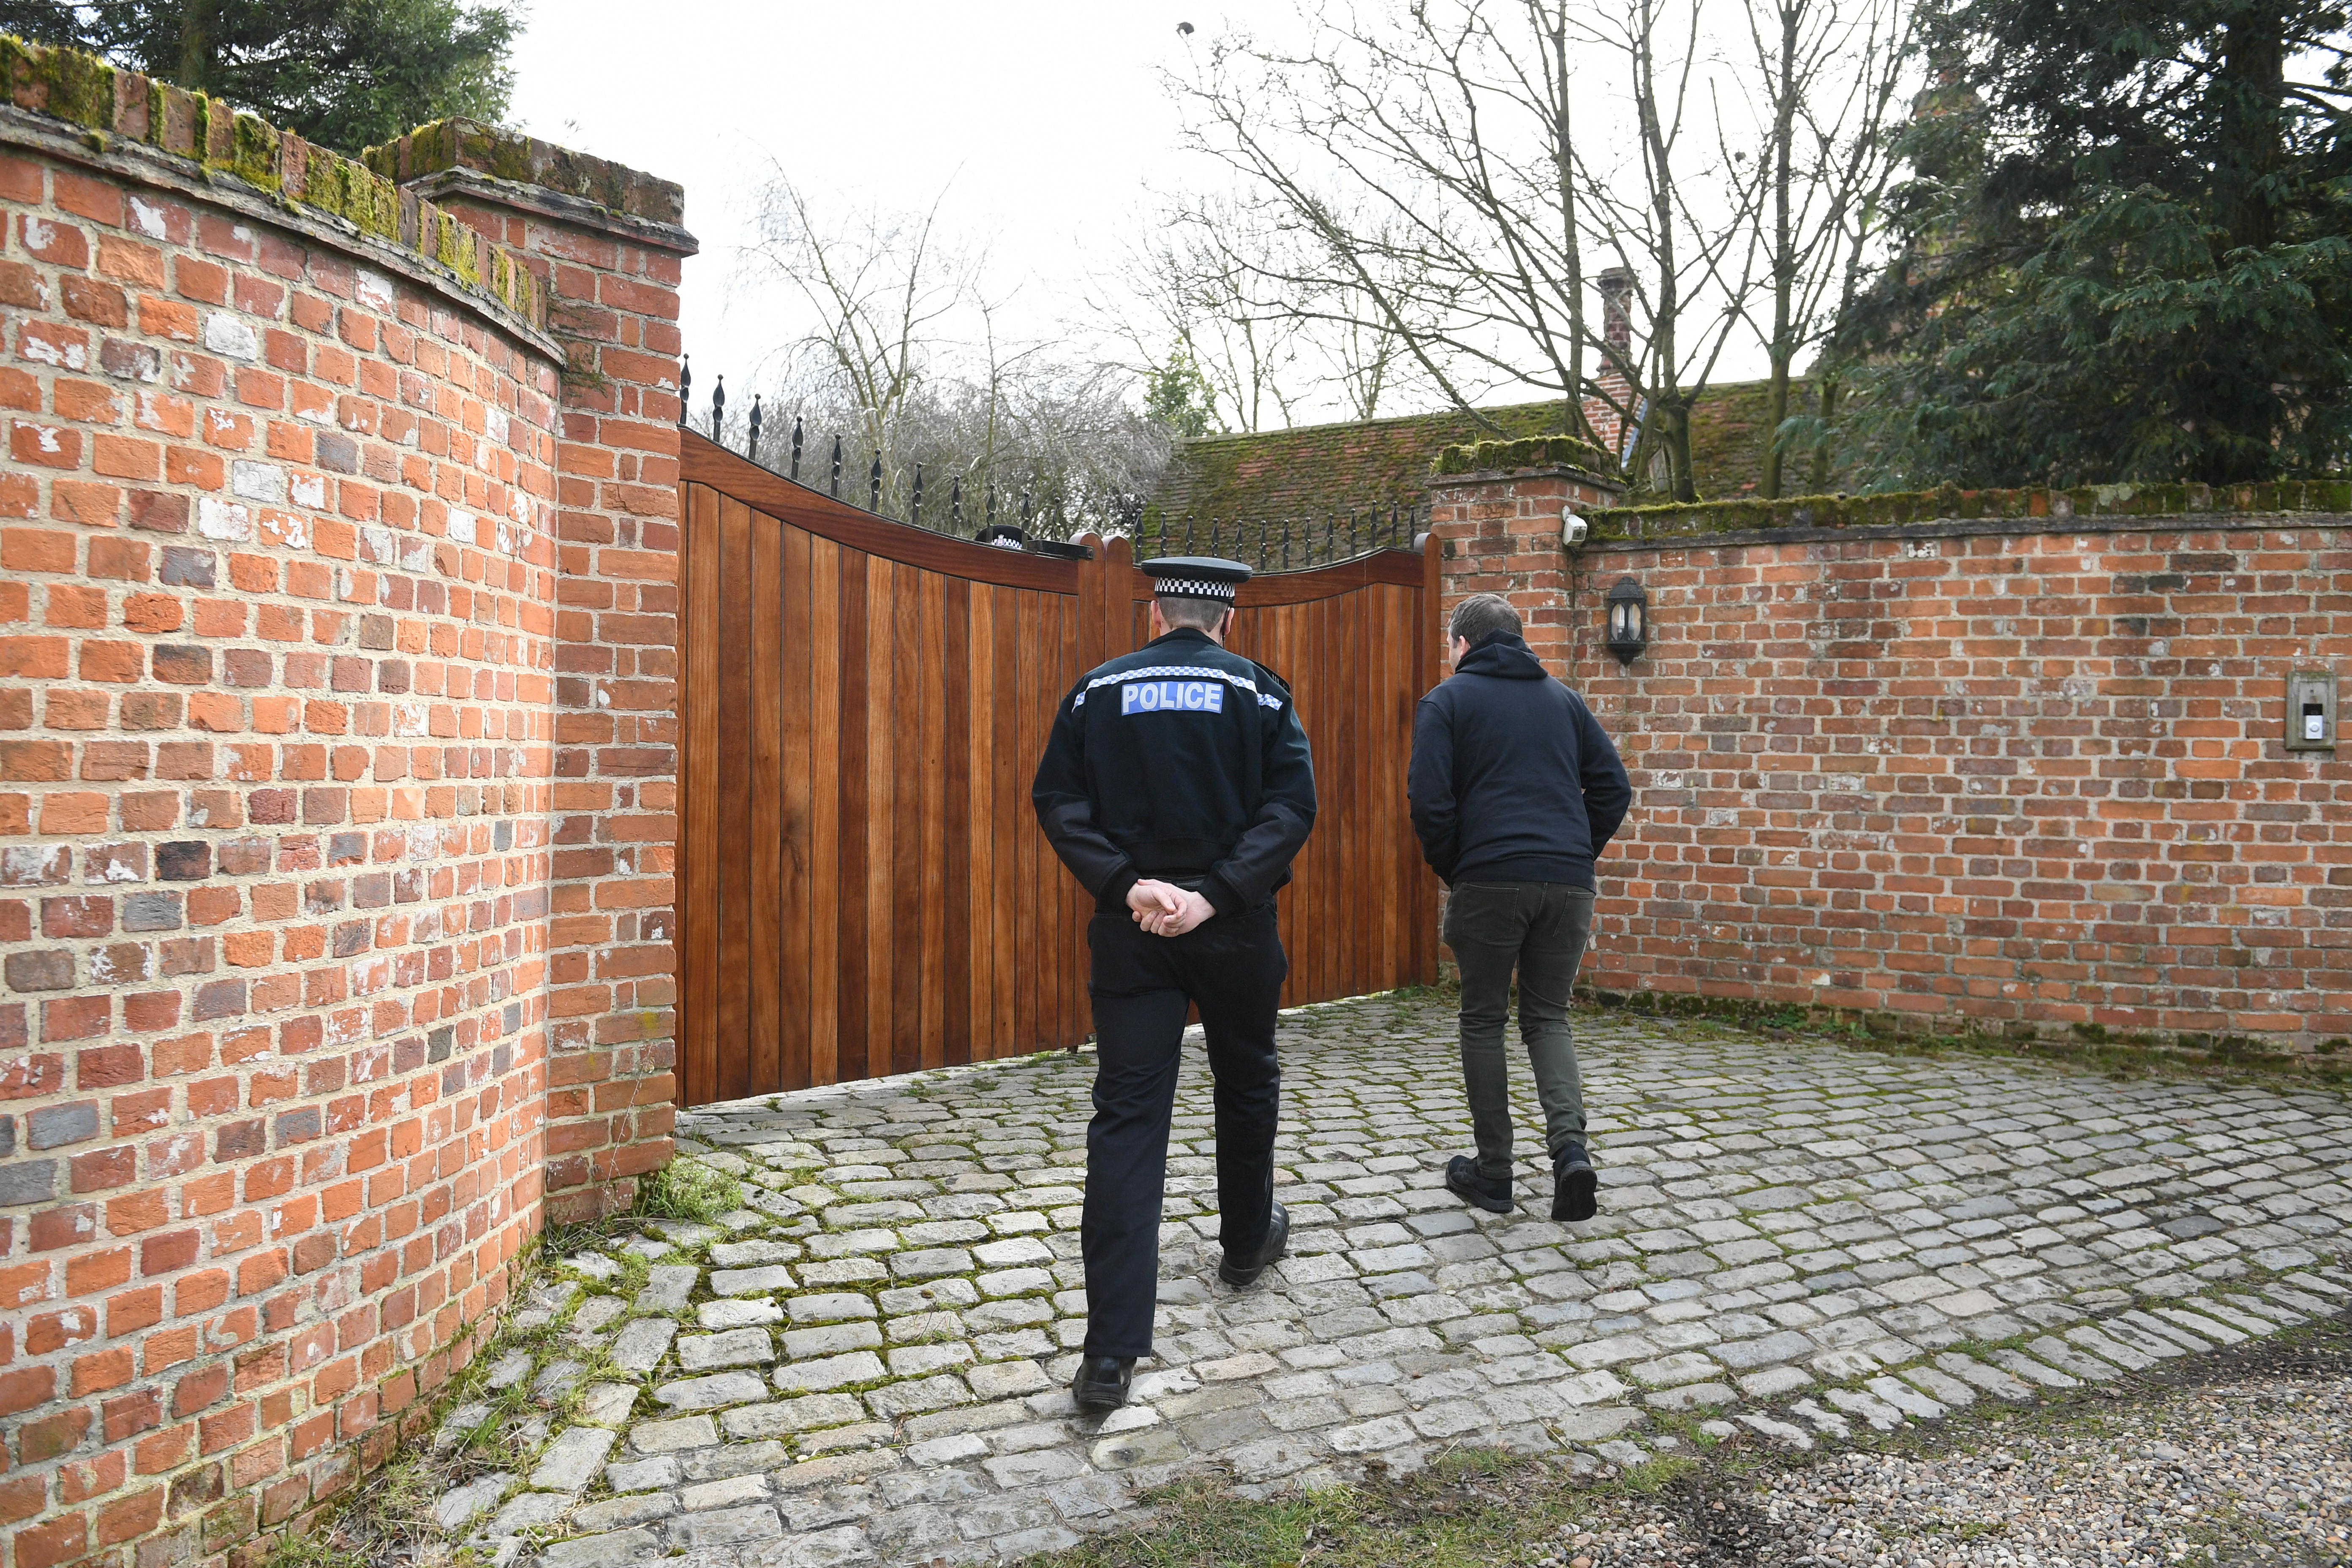 Police outside Keith Flint's house in Essex this morning. Credit: PA